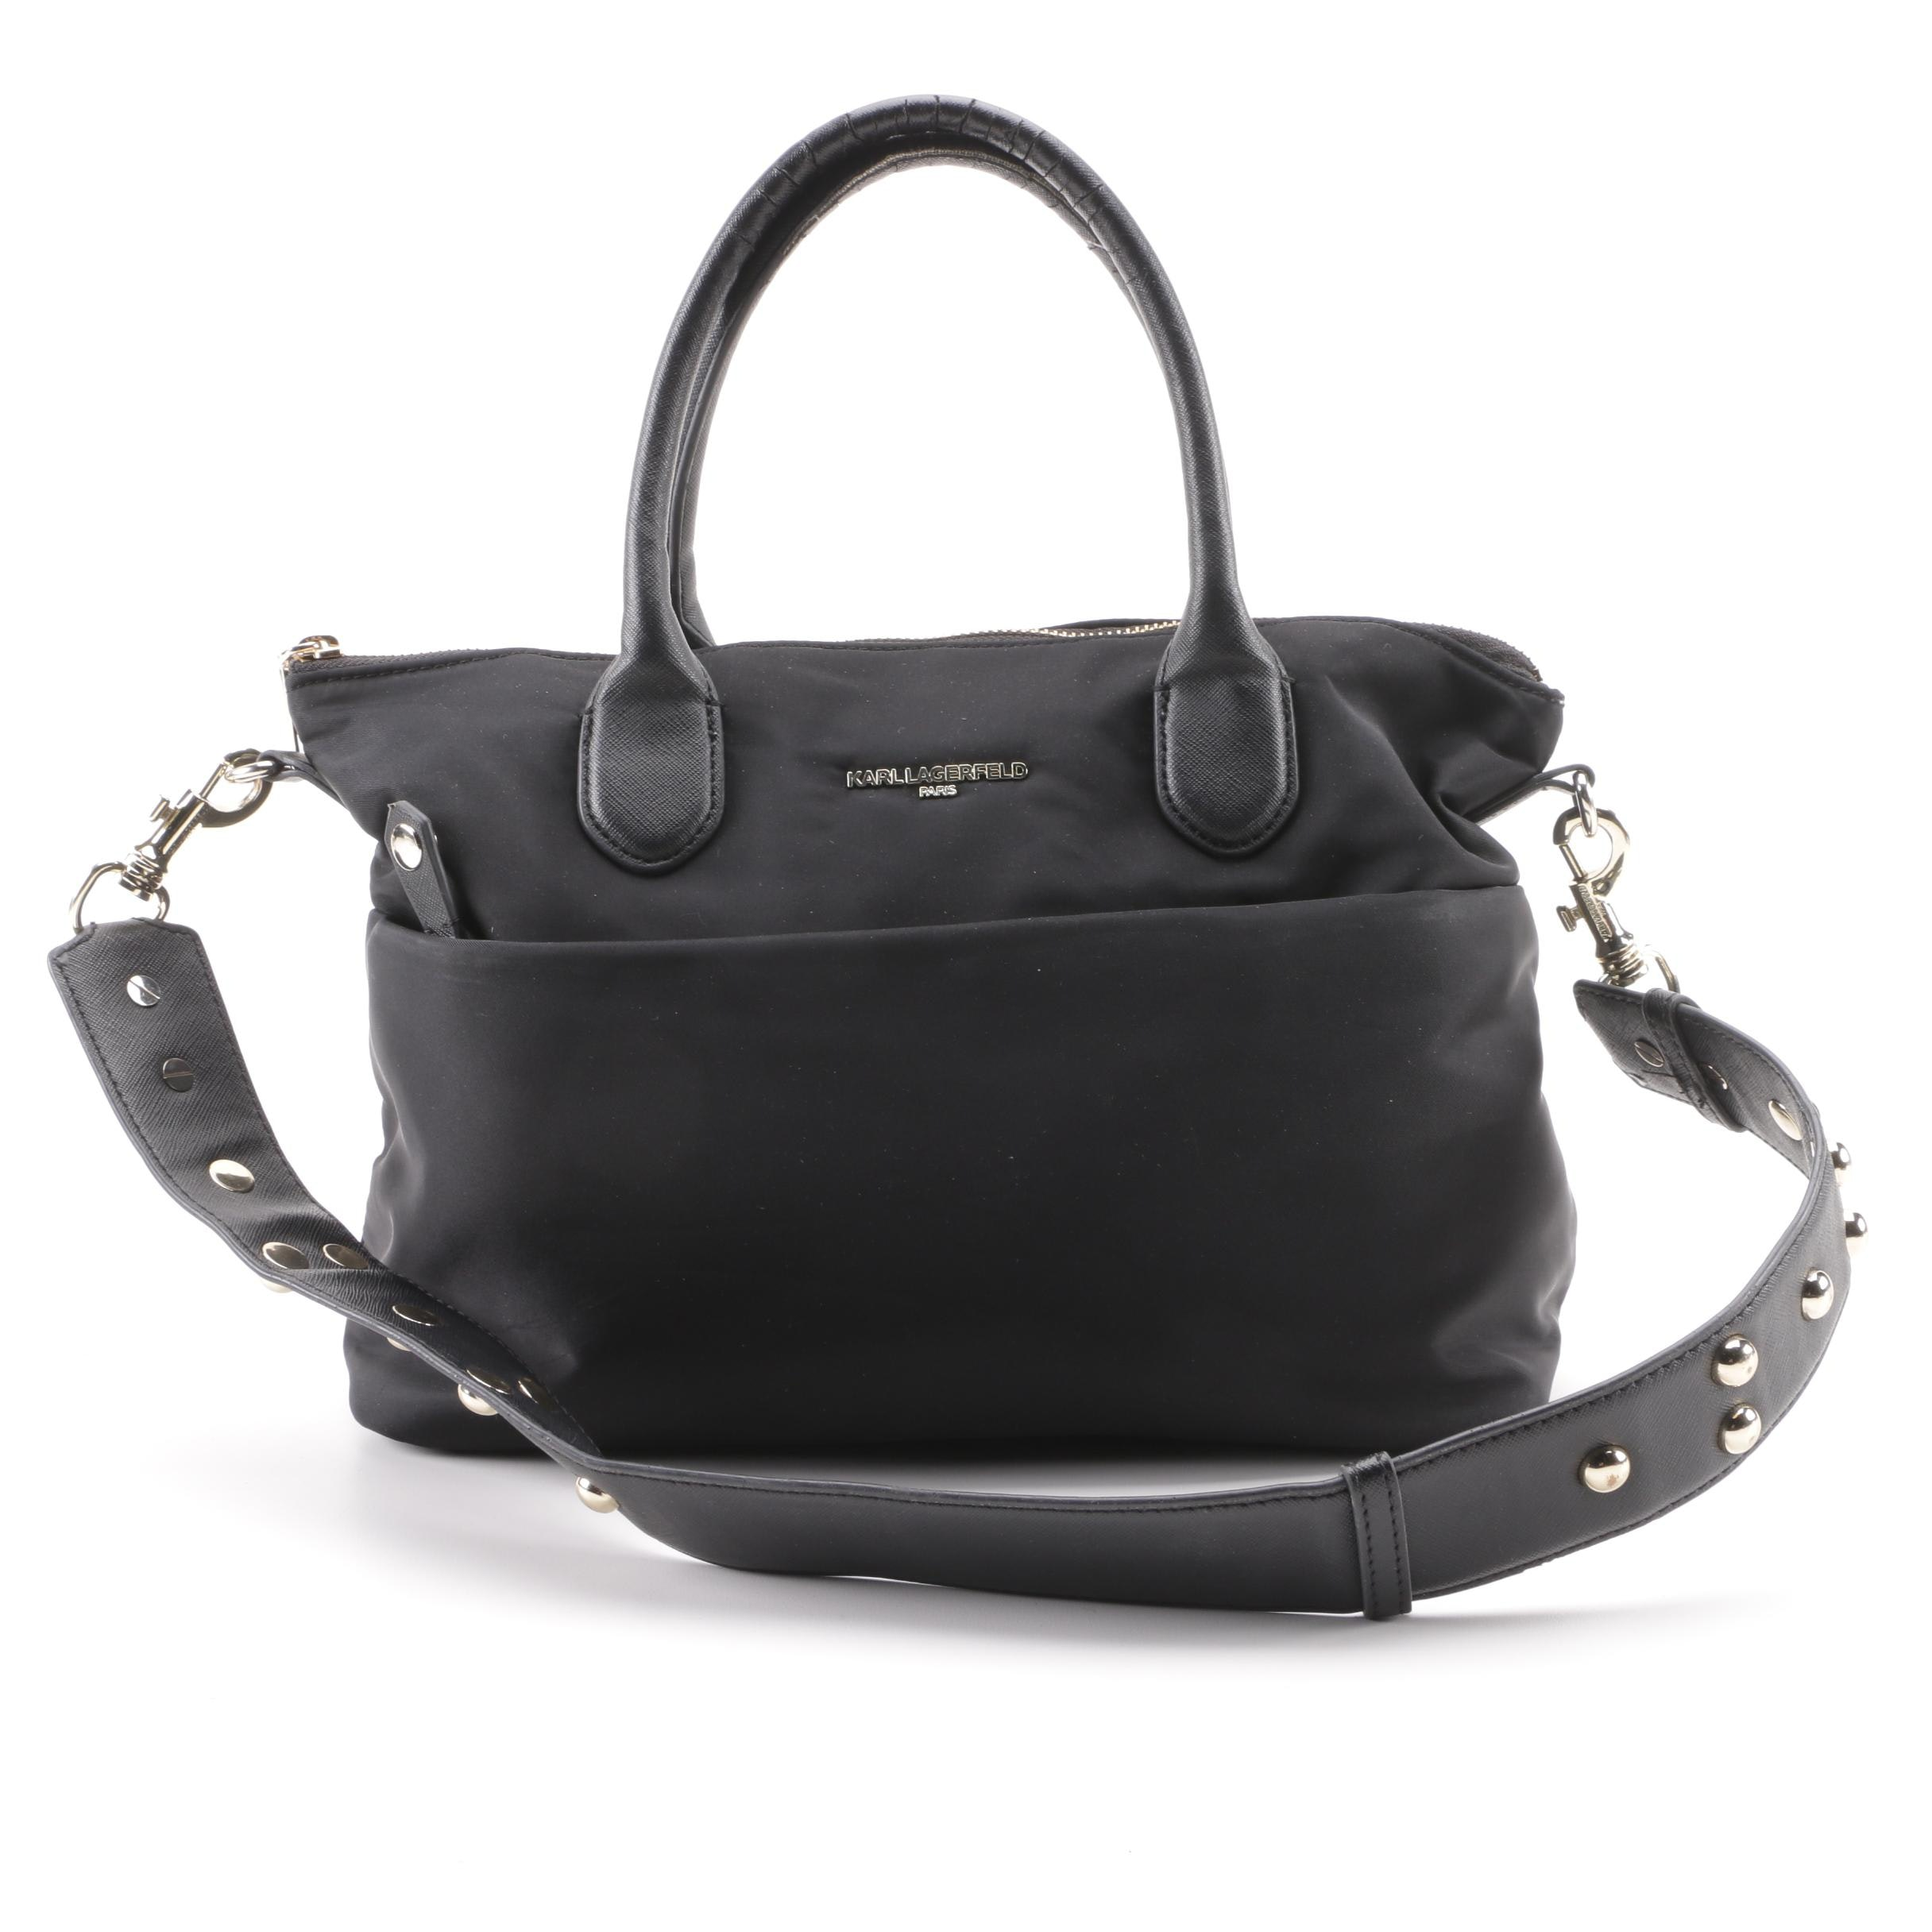 Karl Lagerfeld Paris Black Nylon Shoulder Bag